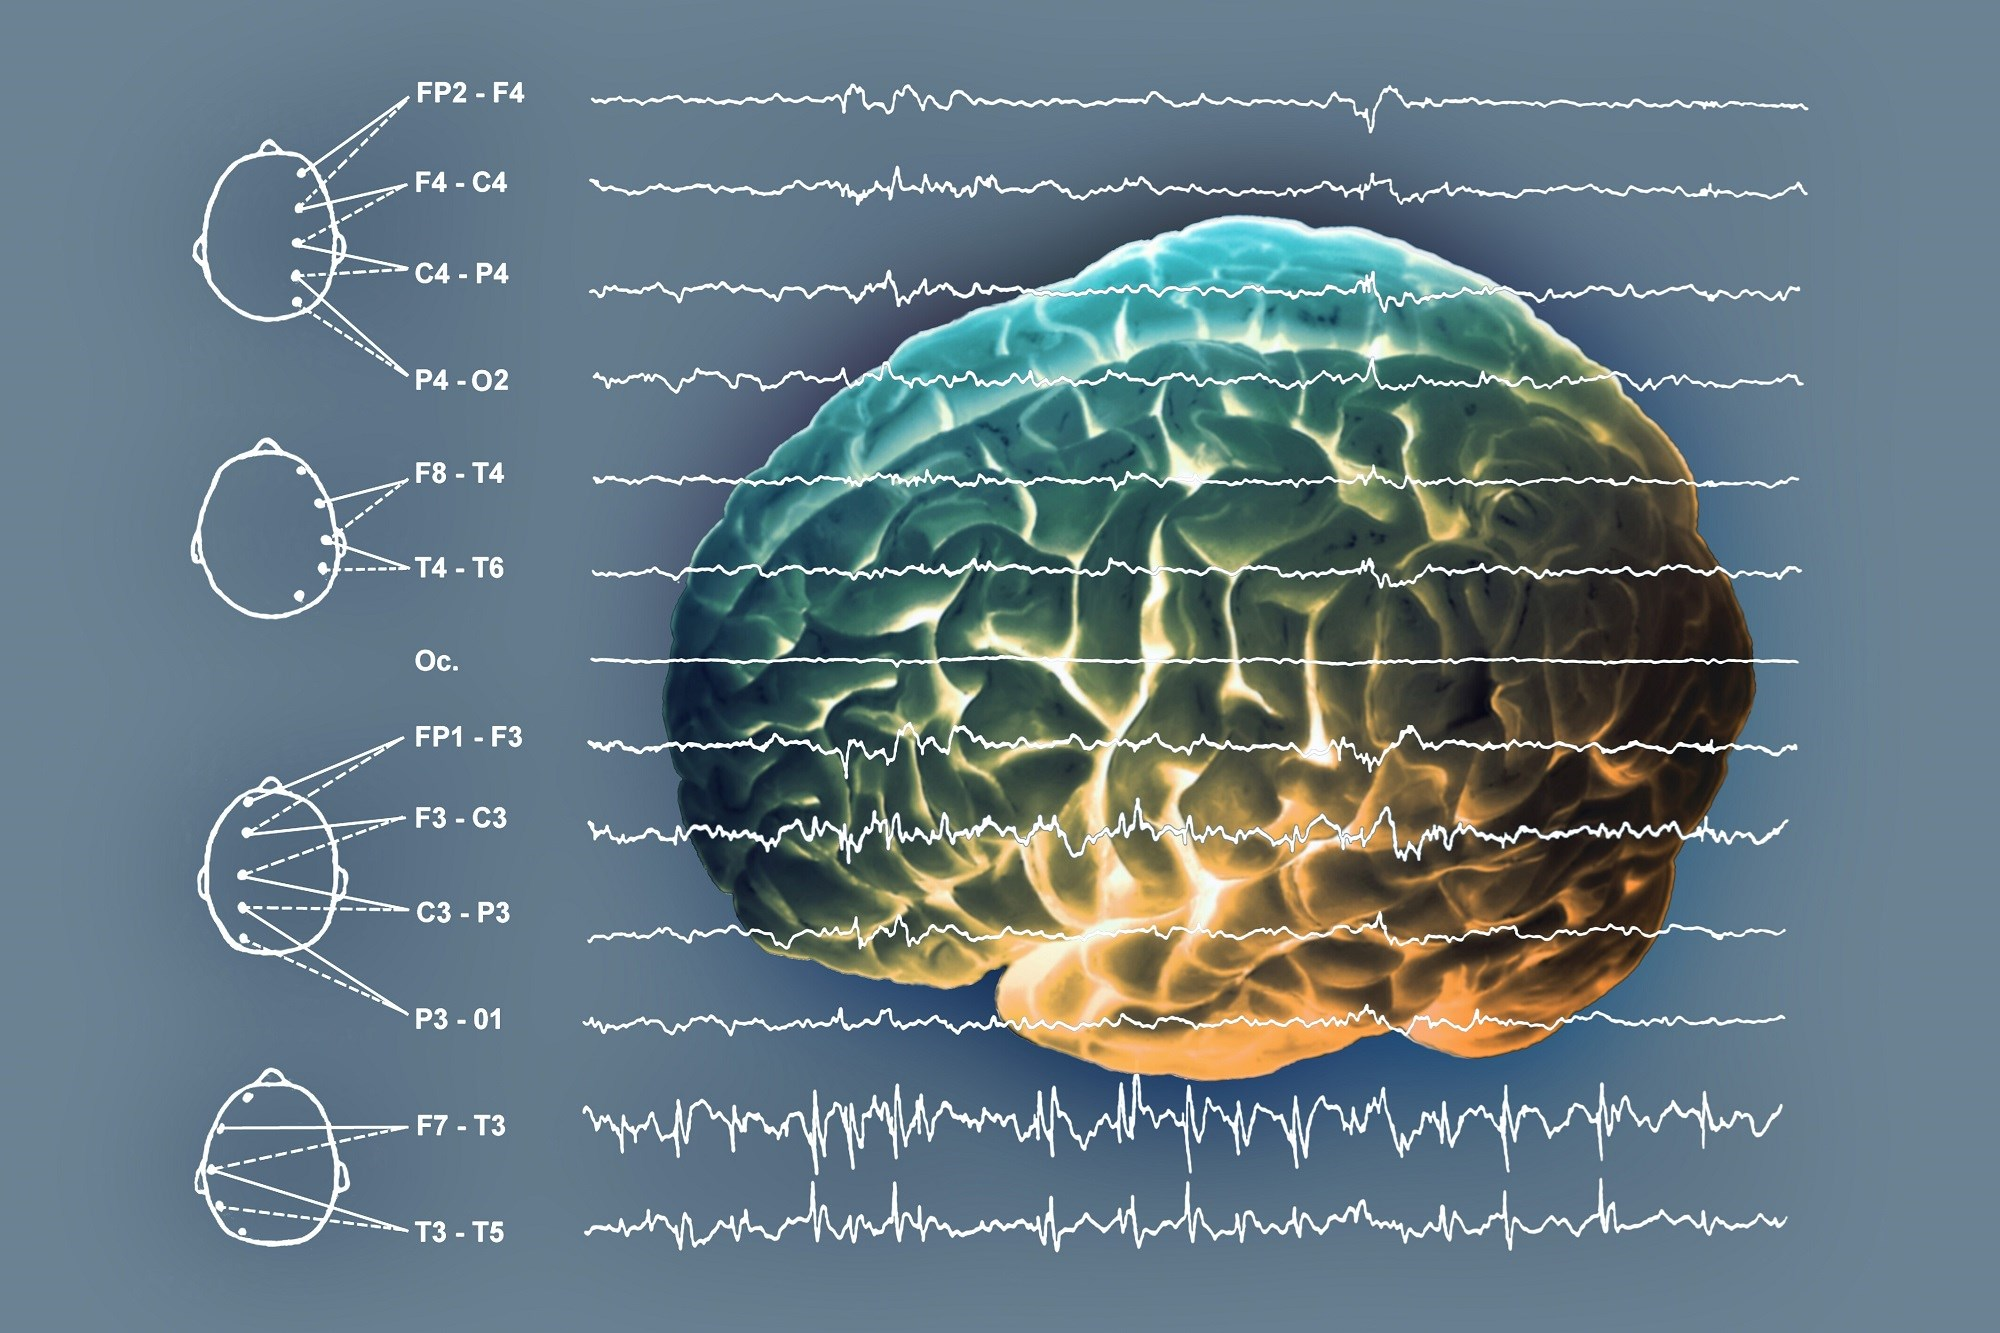 Patients with a higher number of Lennox-Gastaut syndrome traits had a greater likelihood of ongoing seizures.